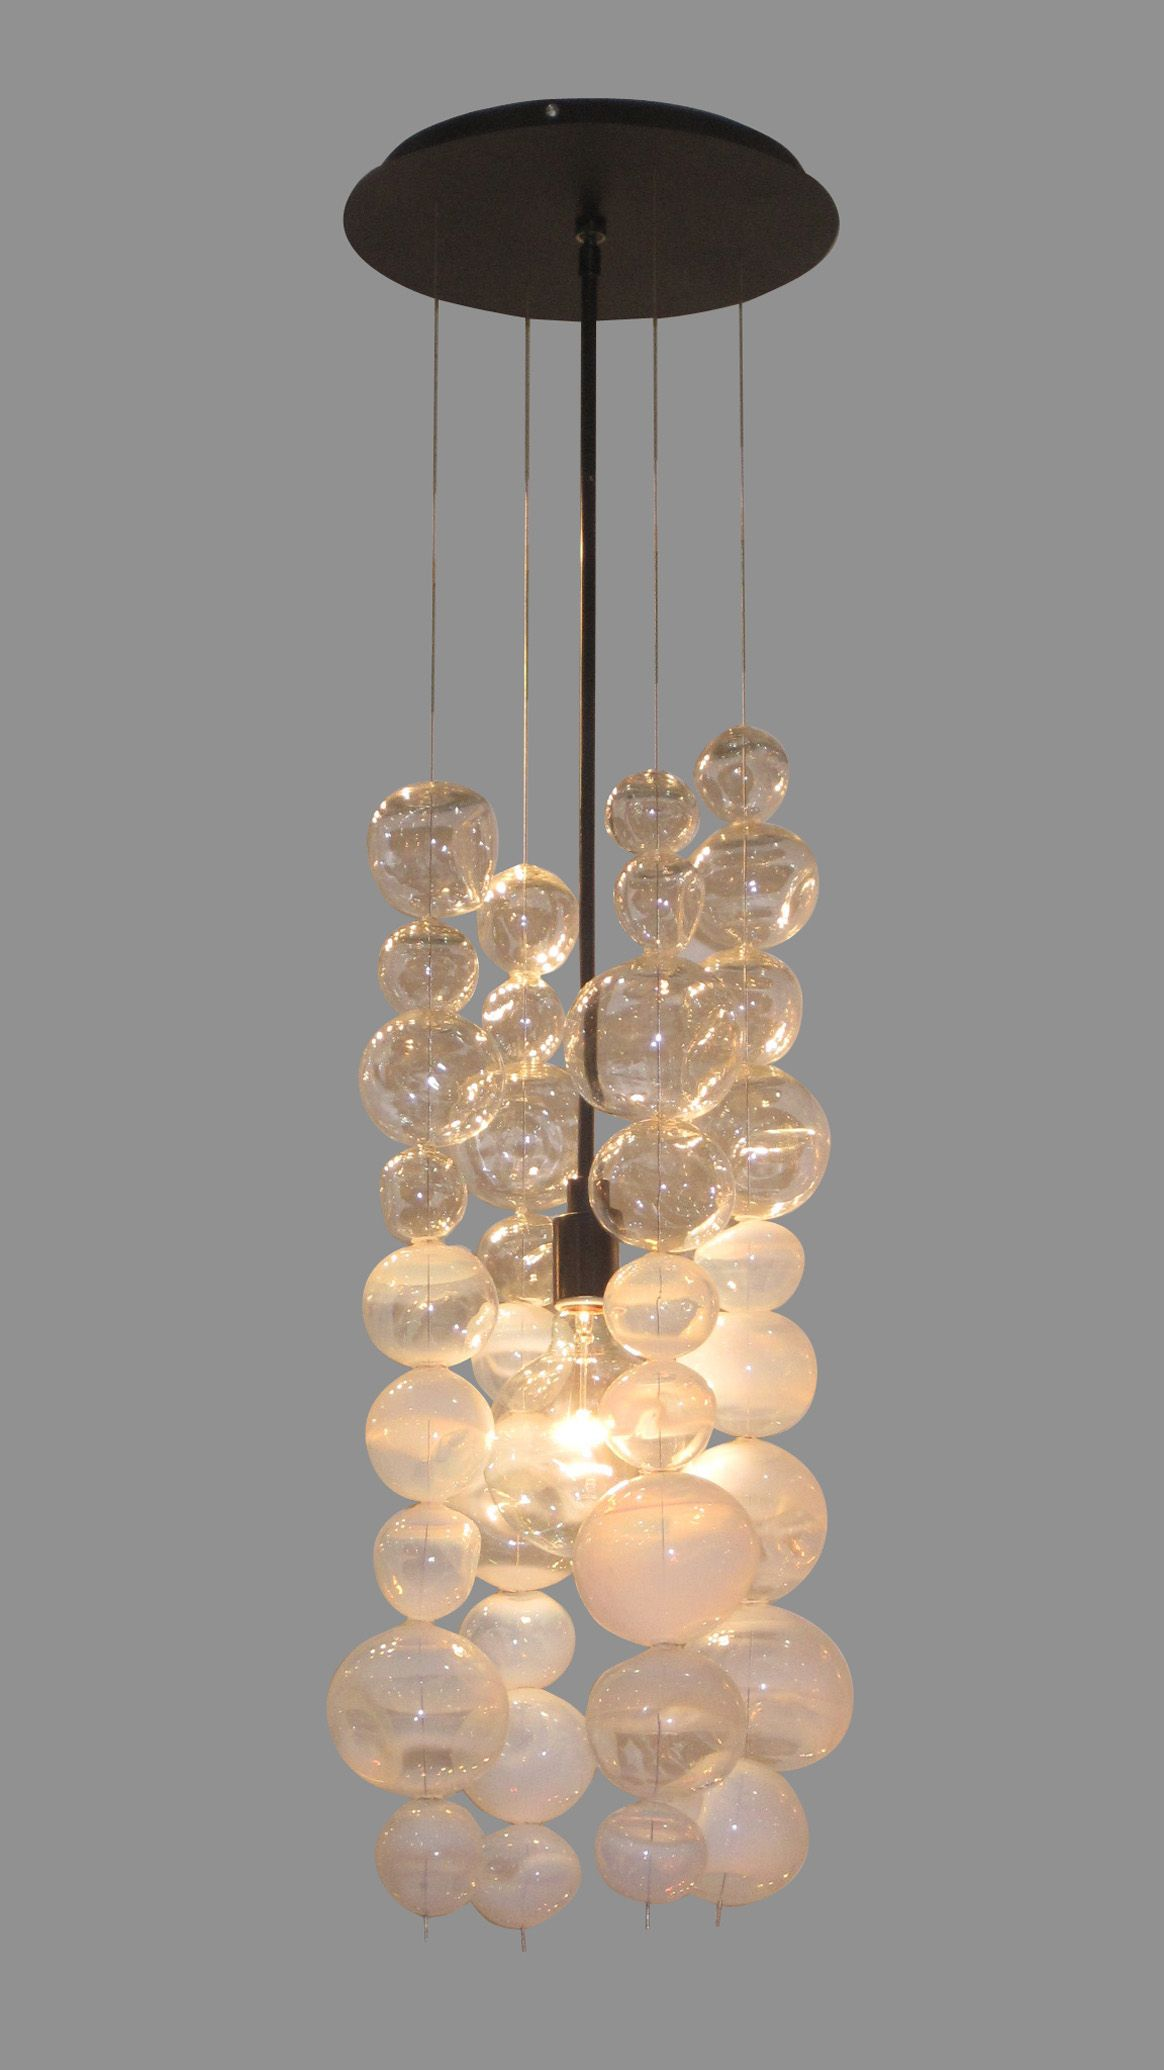 The Dimpled Ball chandelier assembles multiple hand-blown spheres which are sculpted at the furnace with a dimpled, organic form. The chandelier plays upon the interplay and sparkle of these assembled forms as light scatters through them.